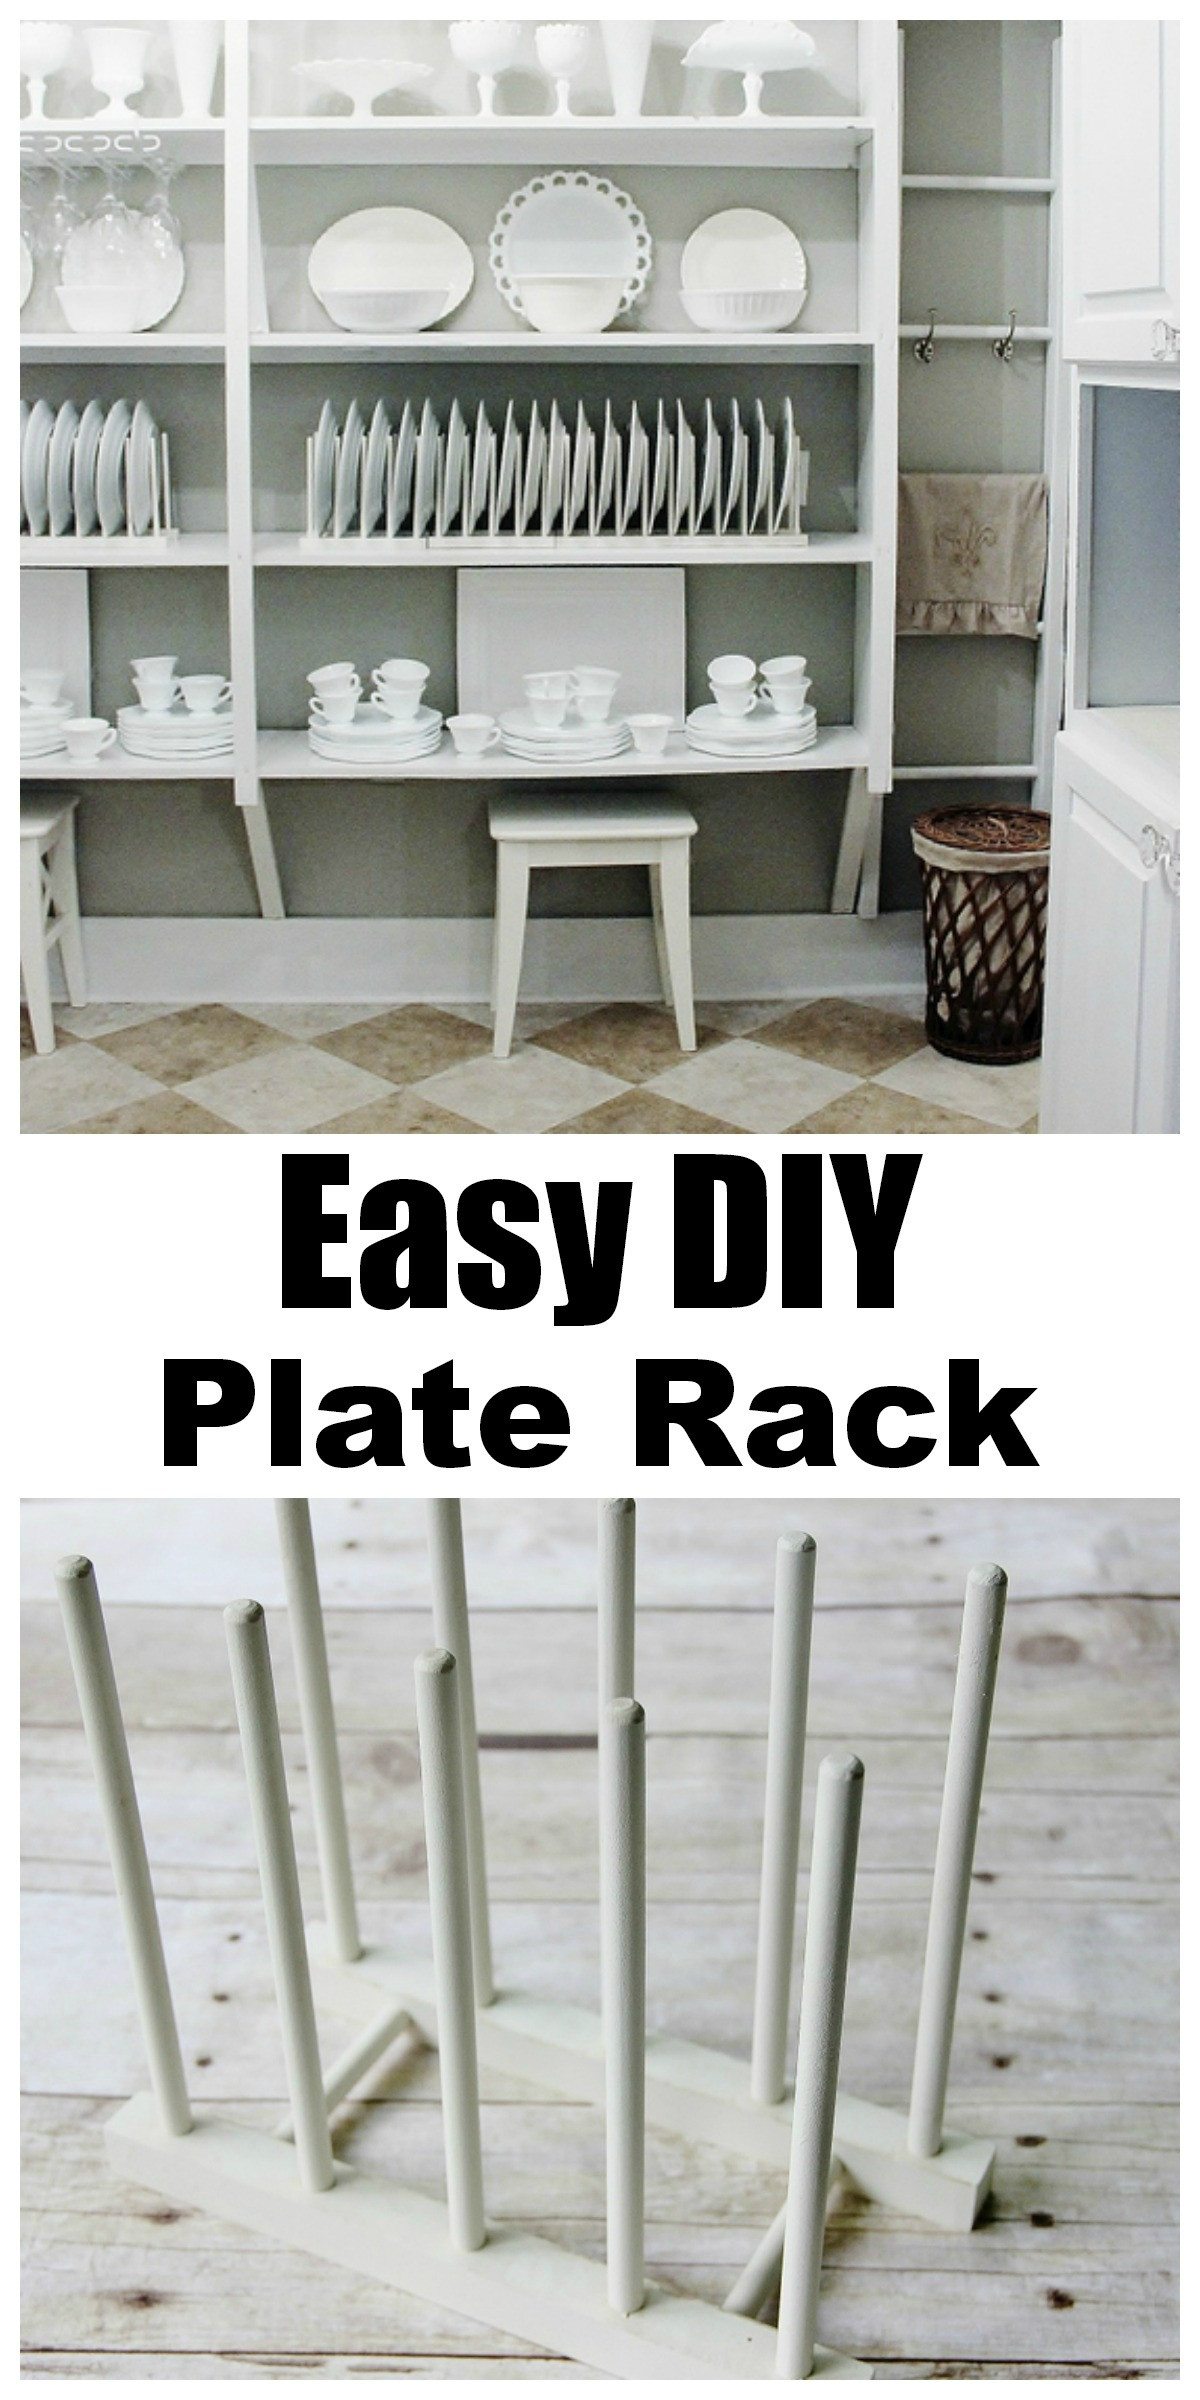 Best ideas about DIY Plate Racks . Save or Pin Simple Plate Display Rack Thistlewood Farm Now.